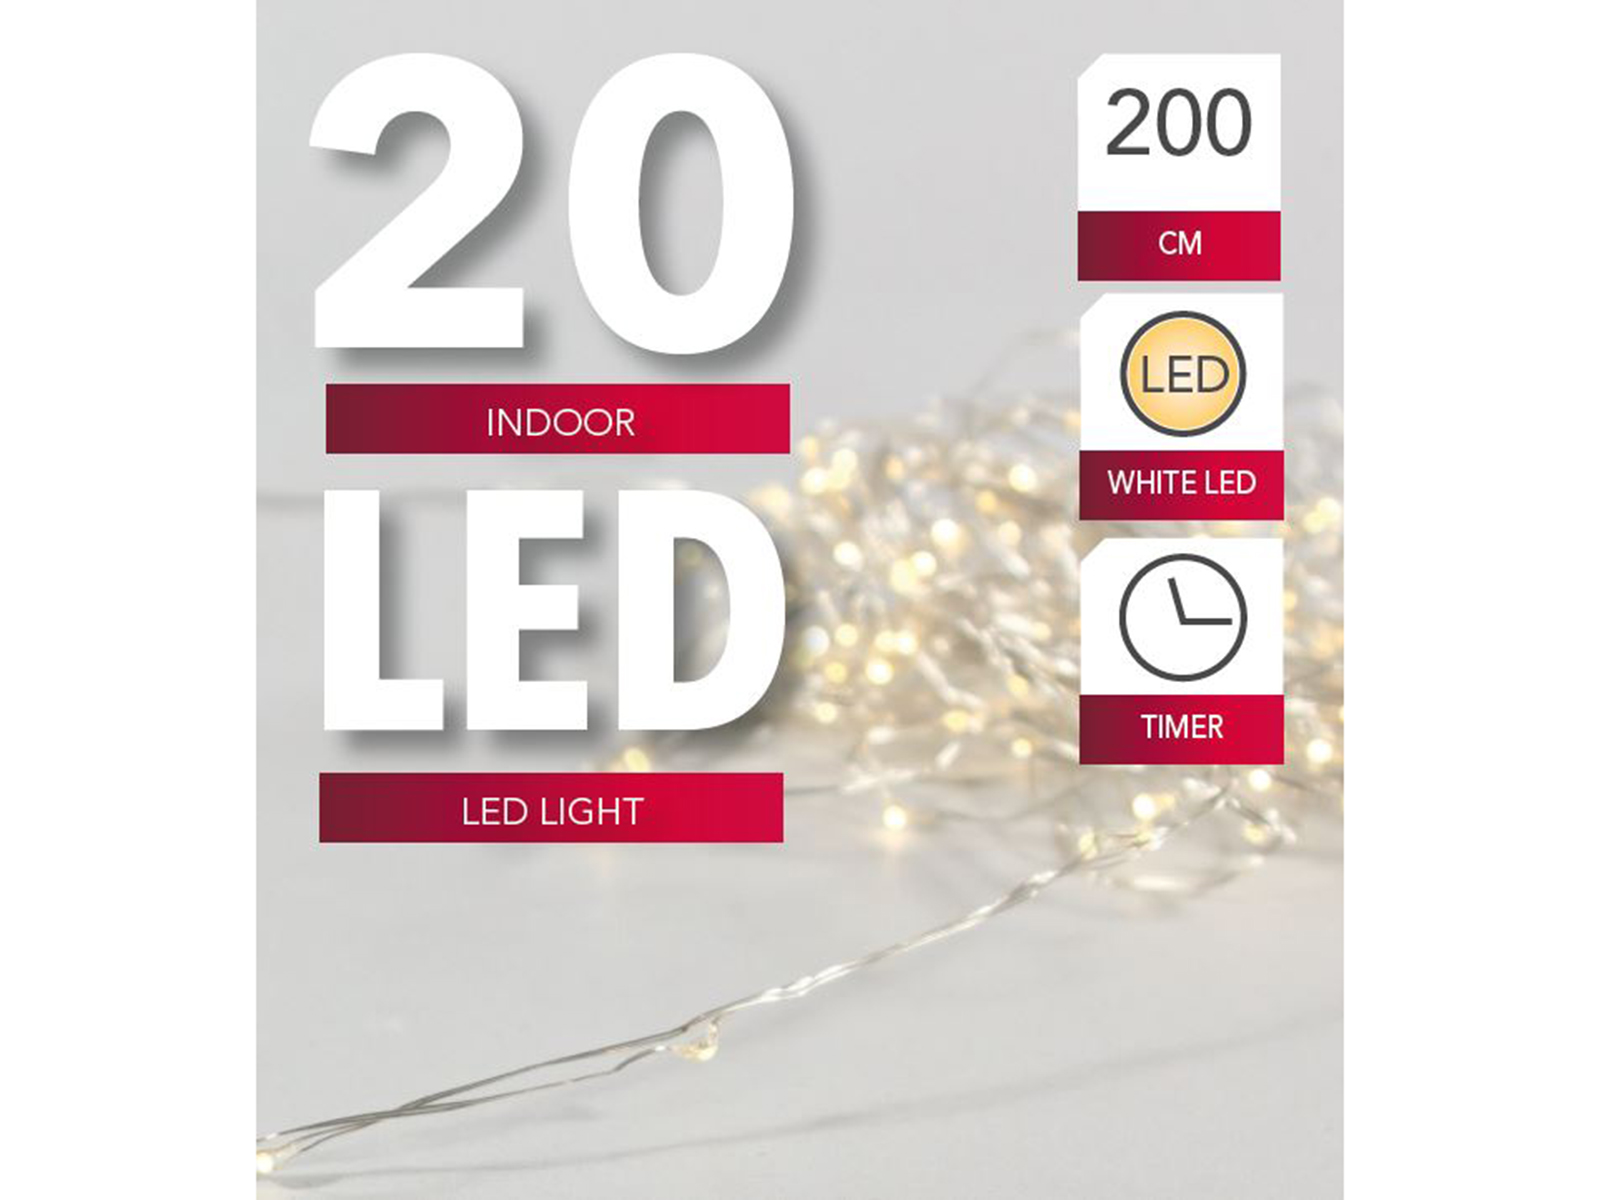 Draht Beleuchtung 20 LED, 2m Image